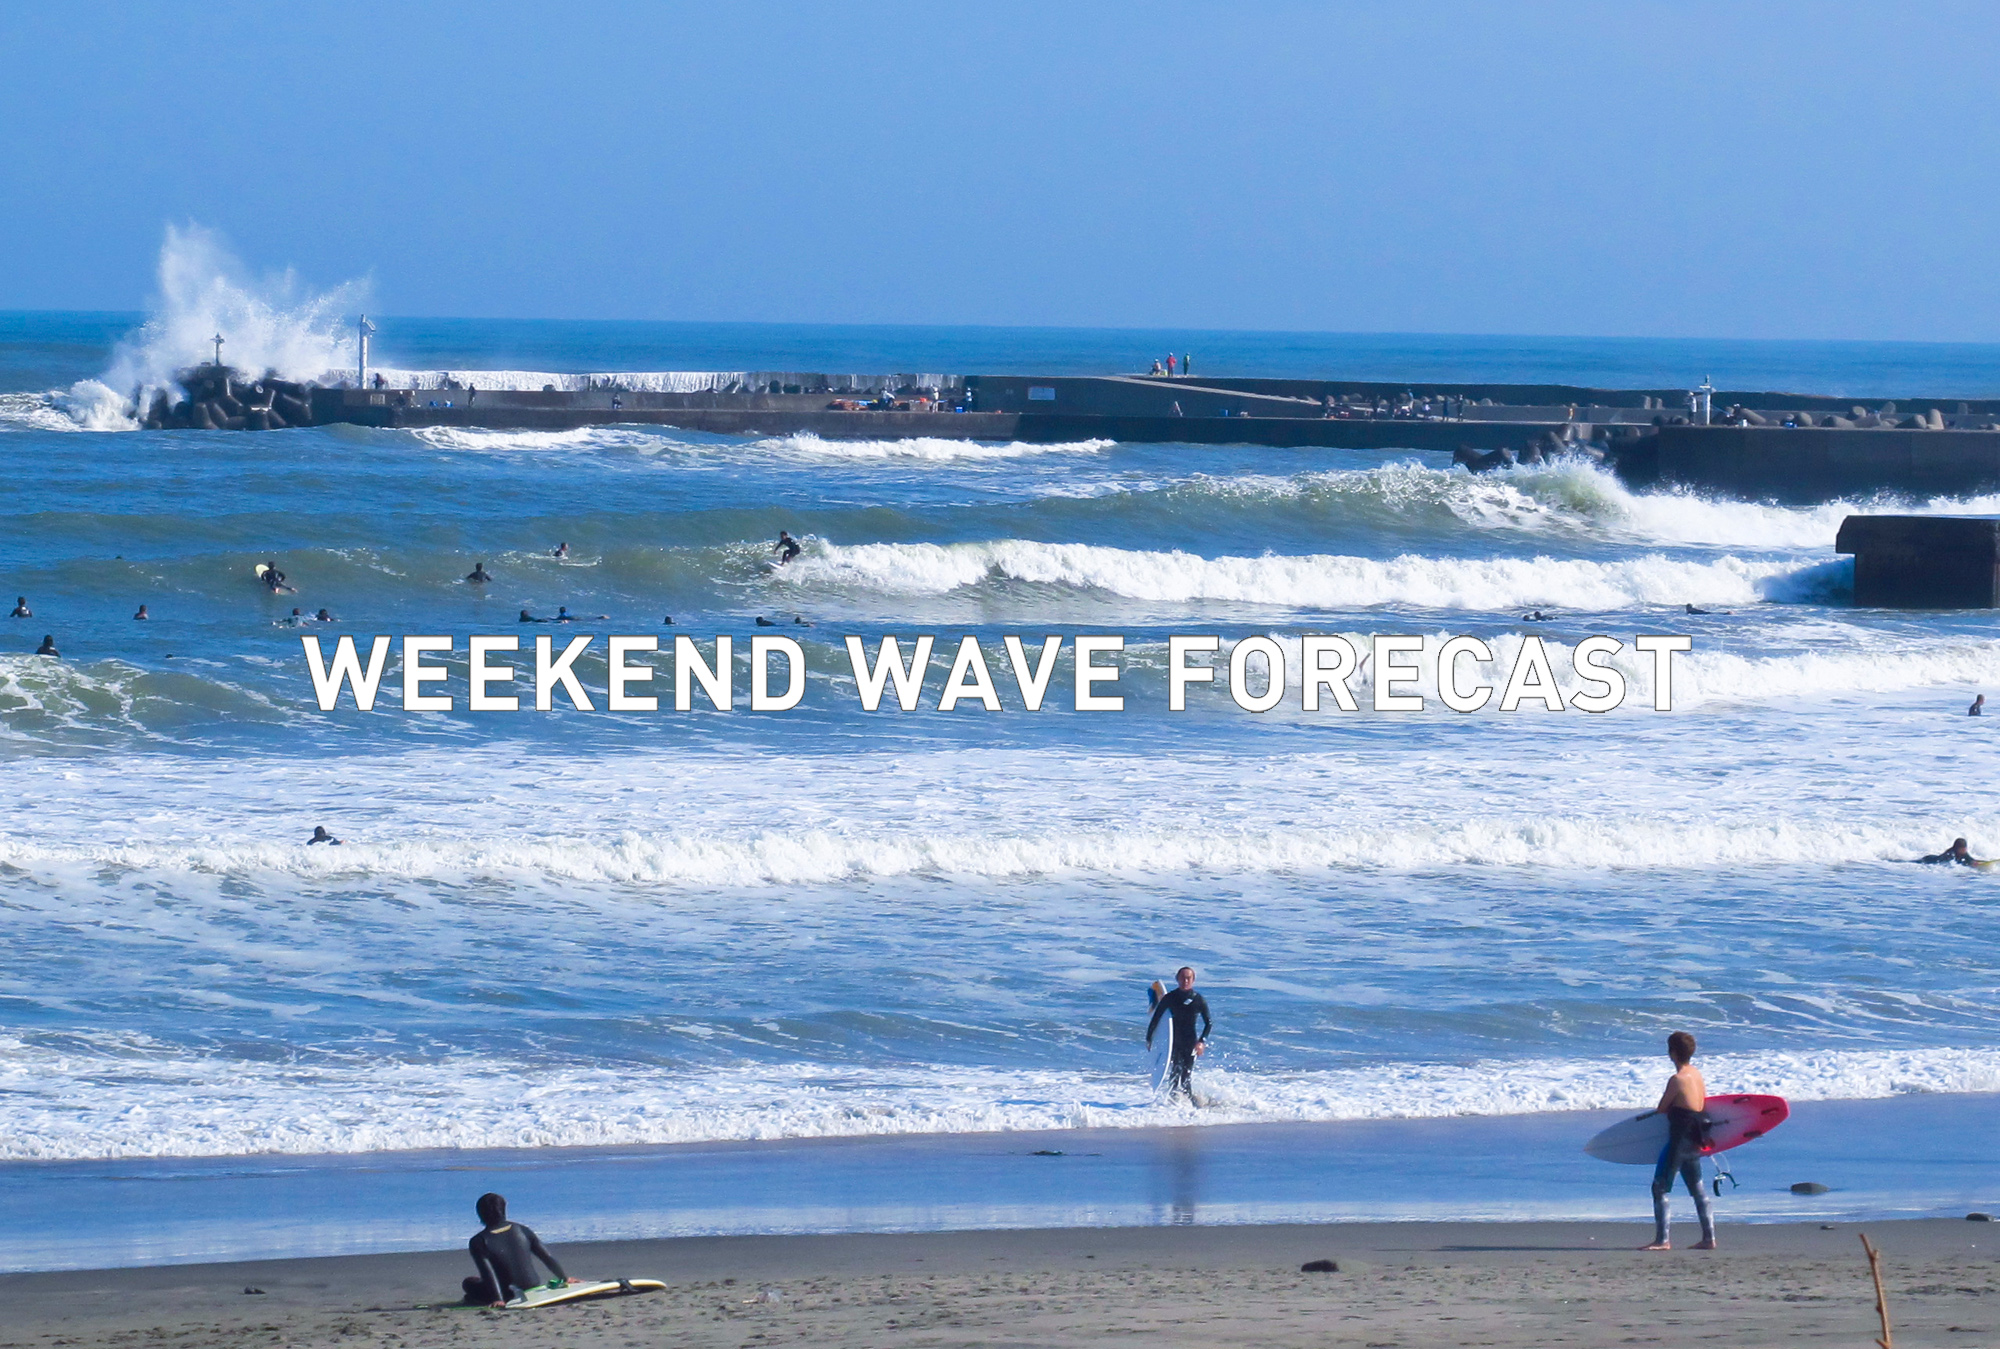 weekend wave forecast 0804